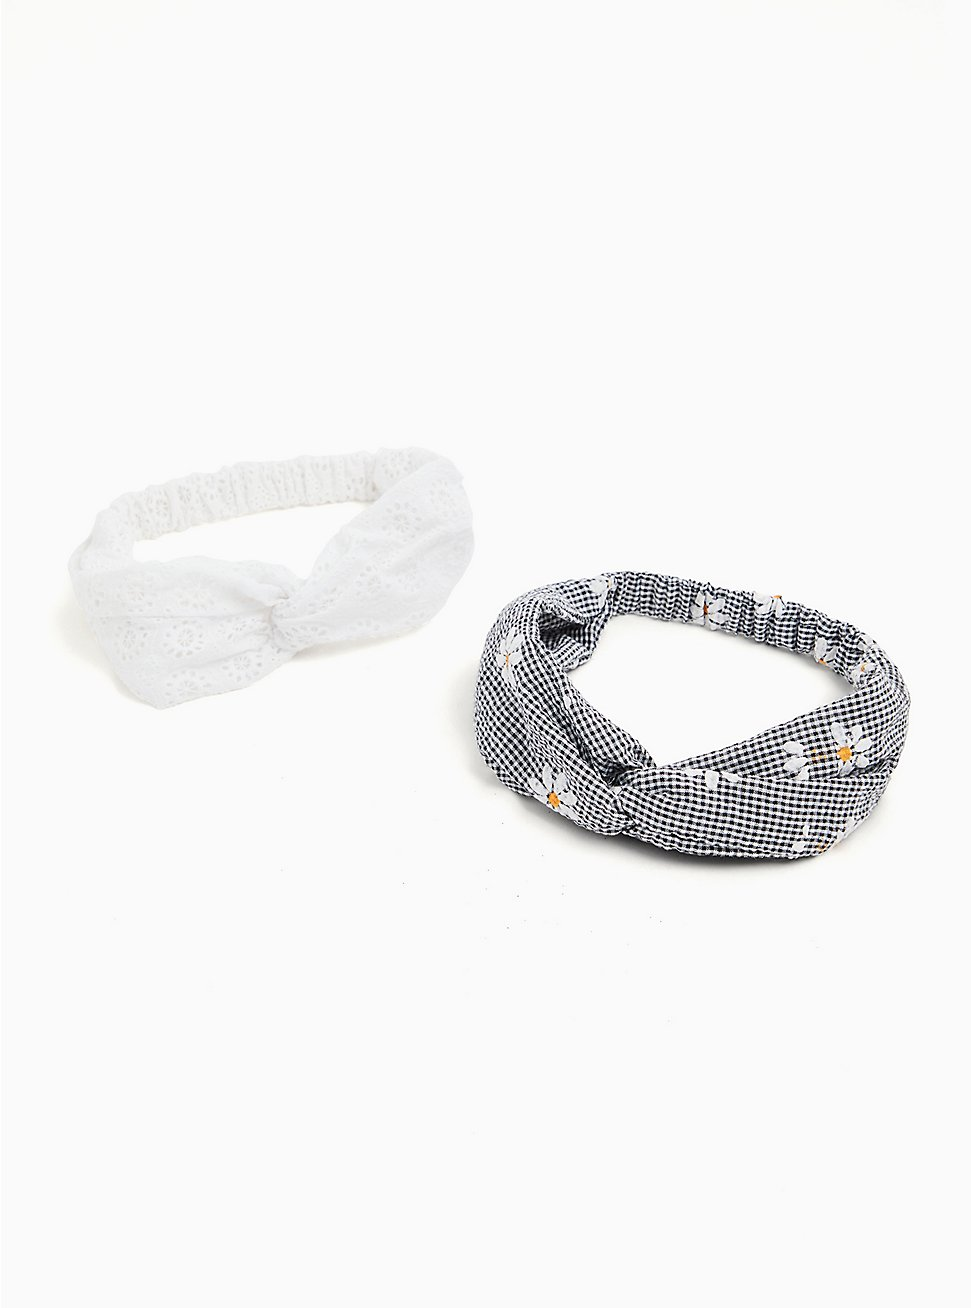 Plus Size Black Gingham Daisy Twist Headband Pack - Pack of 2, , hi-res